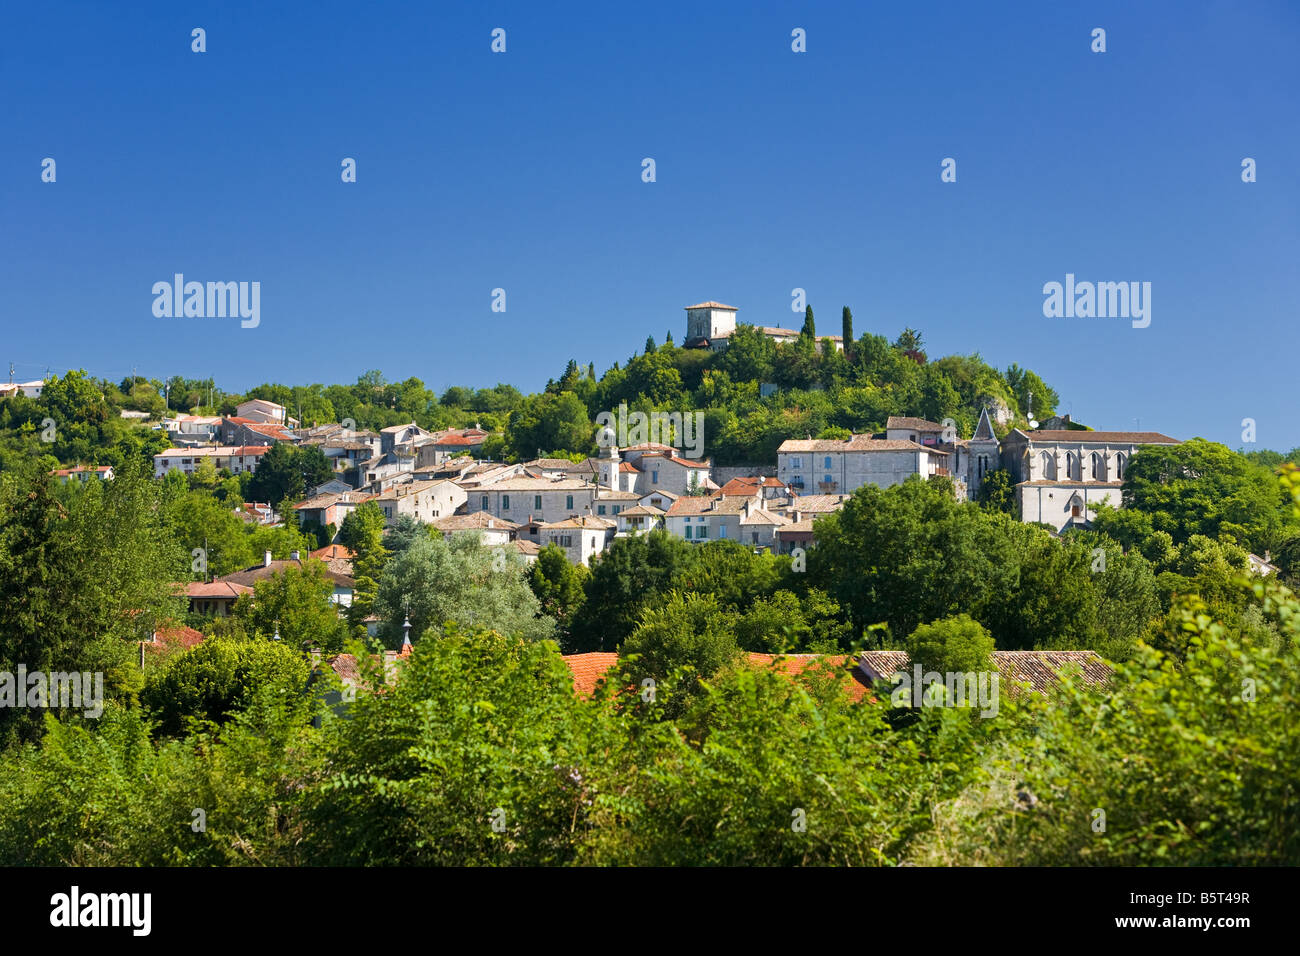 The medieval town of Montaigu-de-Quercy in Tarn et Garonne, Southwest France, Europe - Stock Image